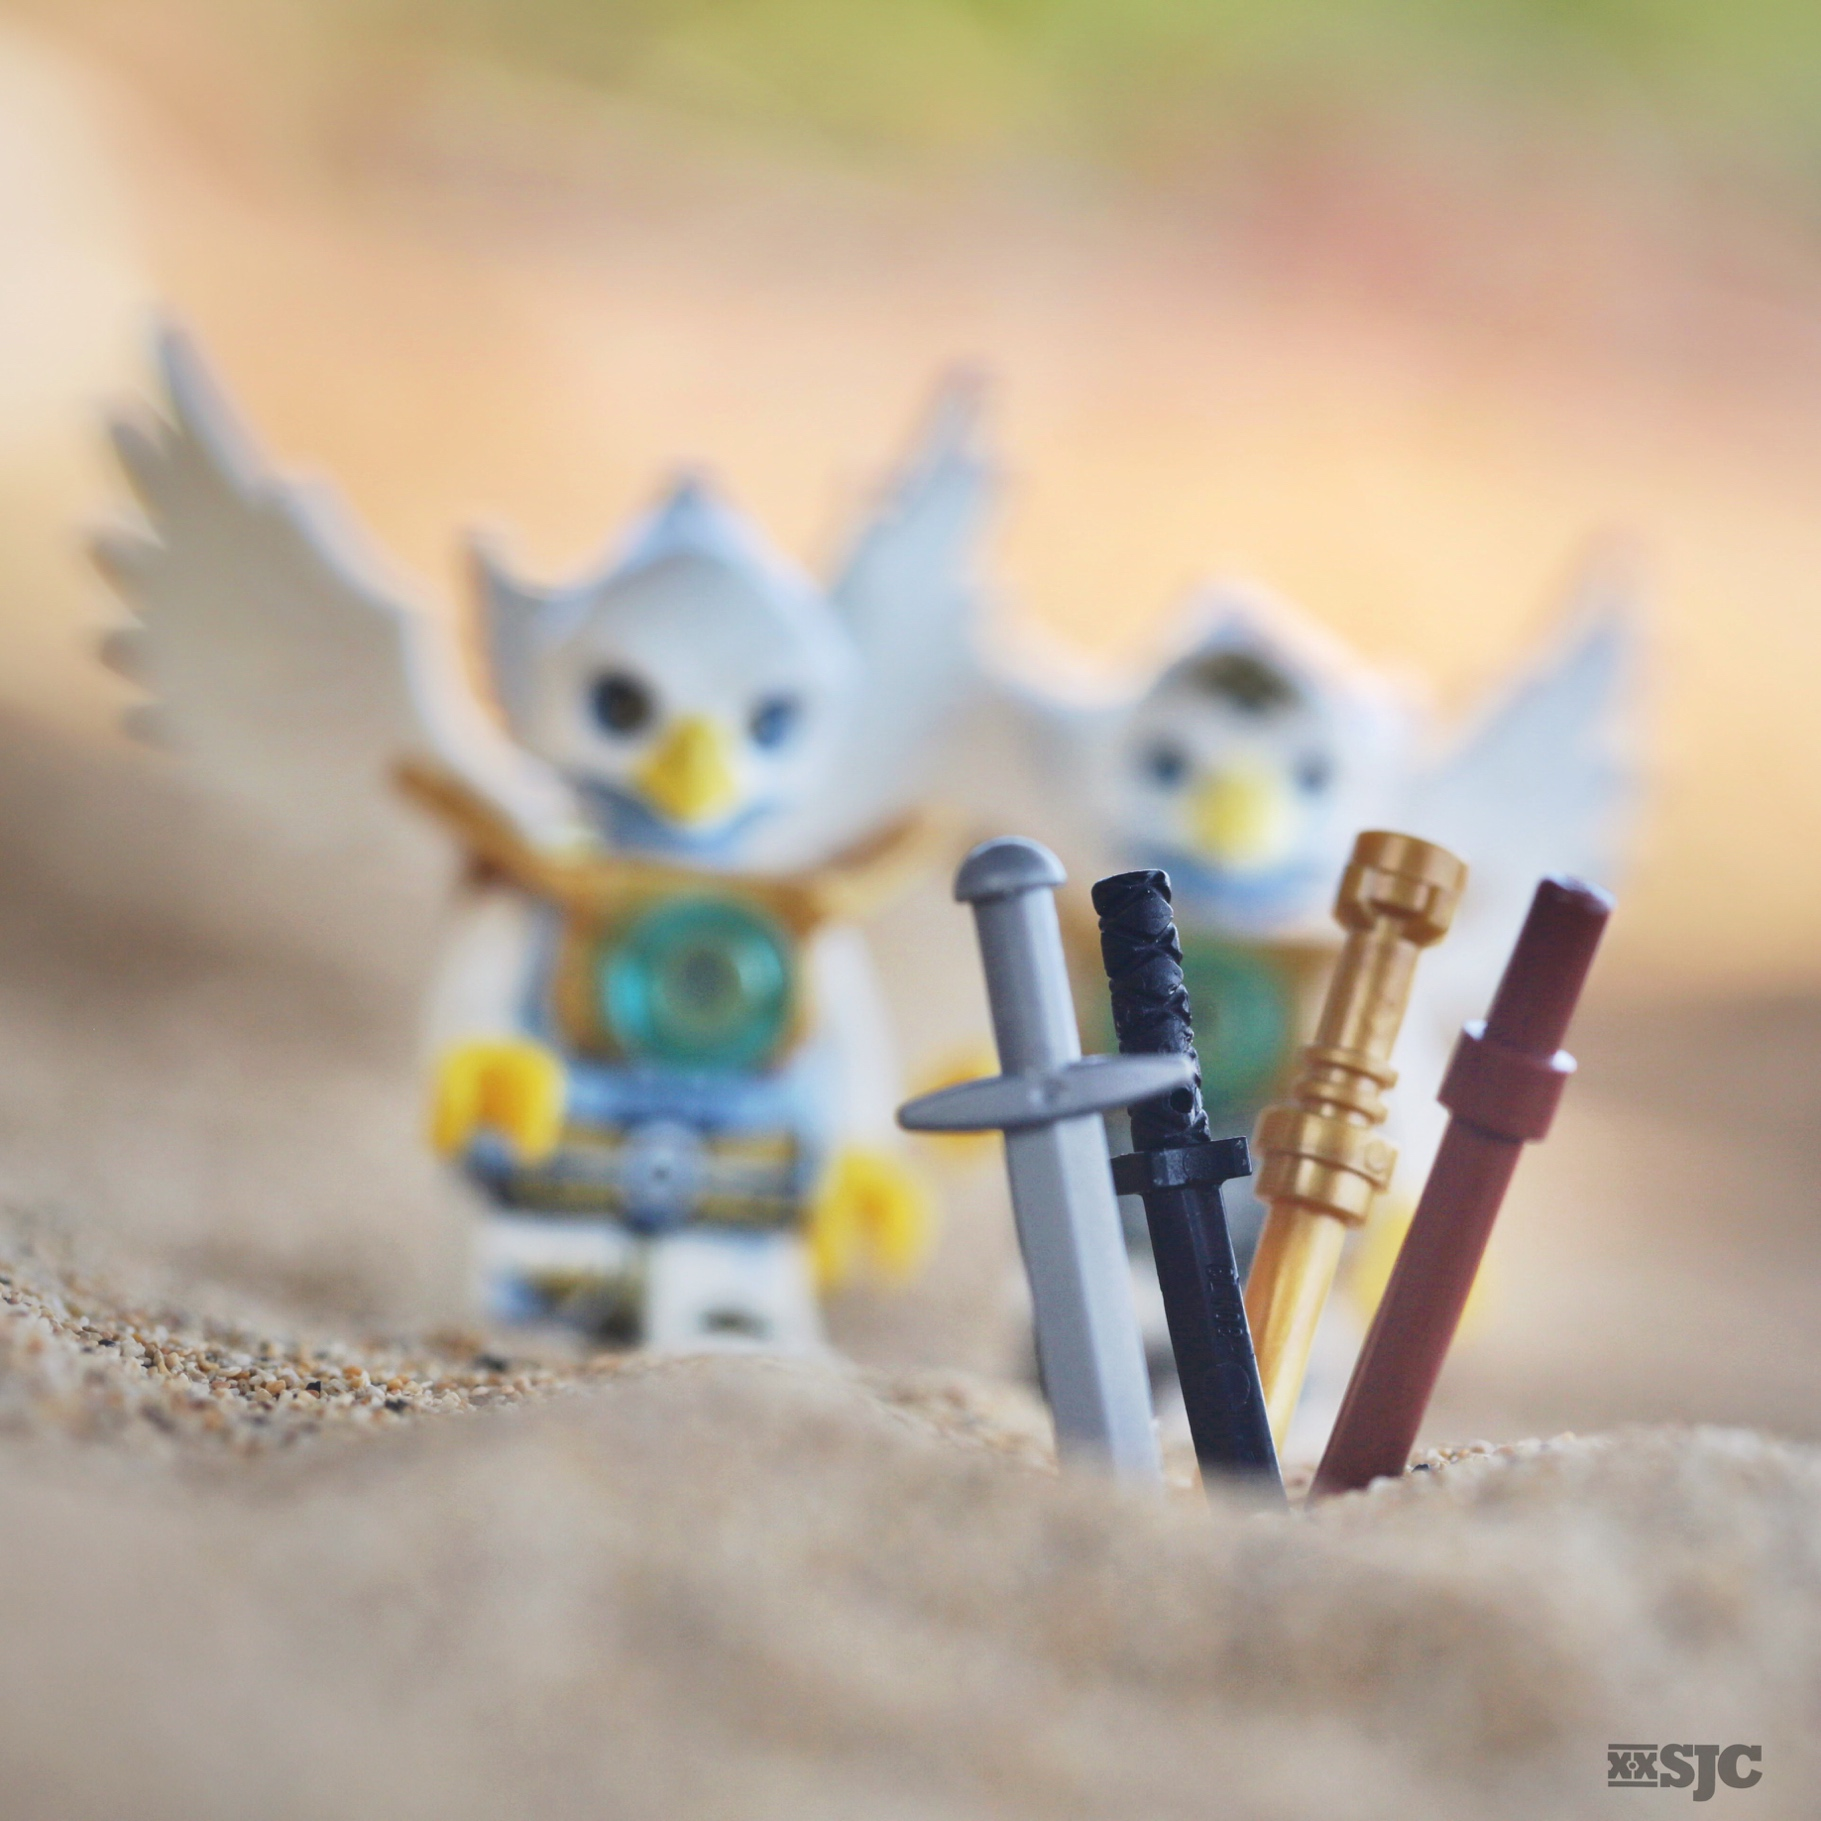 Two Lego Chima birds gather their weapons in preparation for battle, toy photography